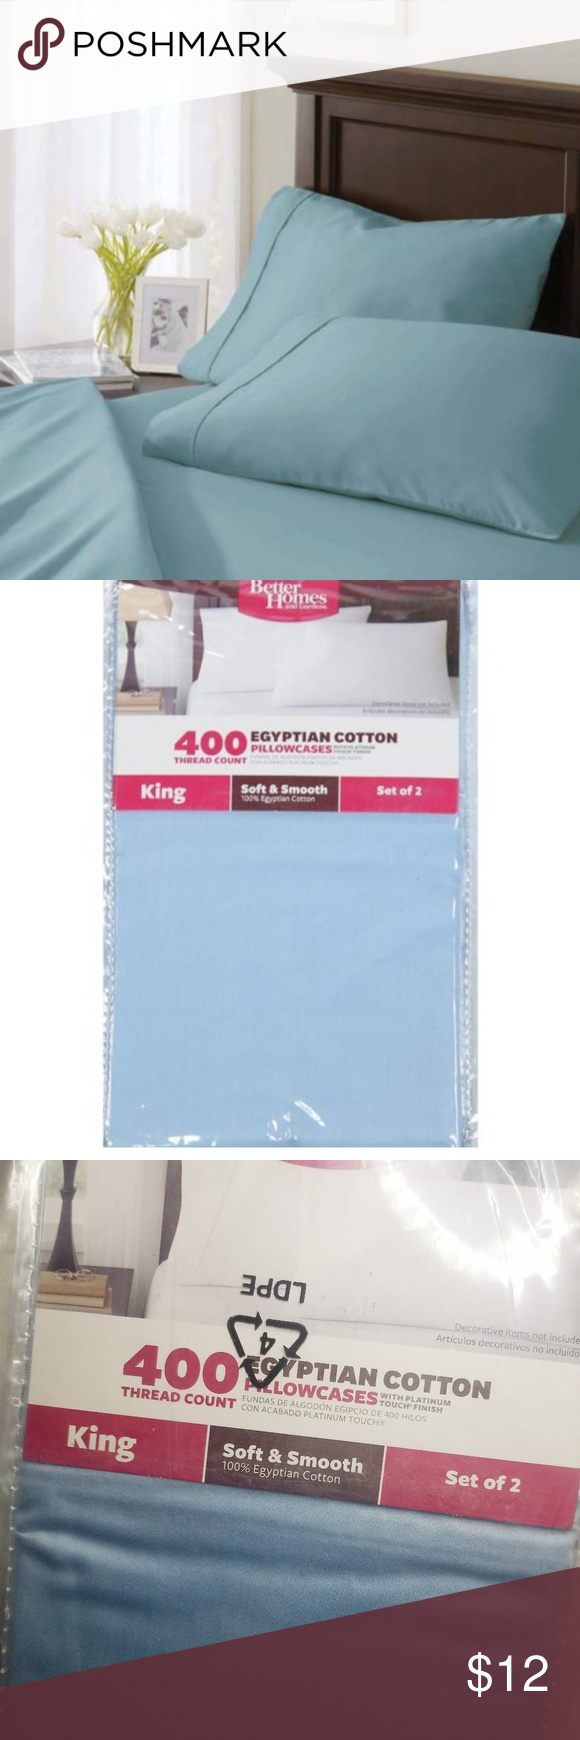 4c8302cae65d20106d855e3619f4054a - Better Homes And Gardens 400 Thread Count Solid Egyptian Cotton